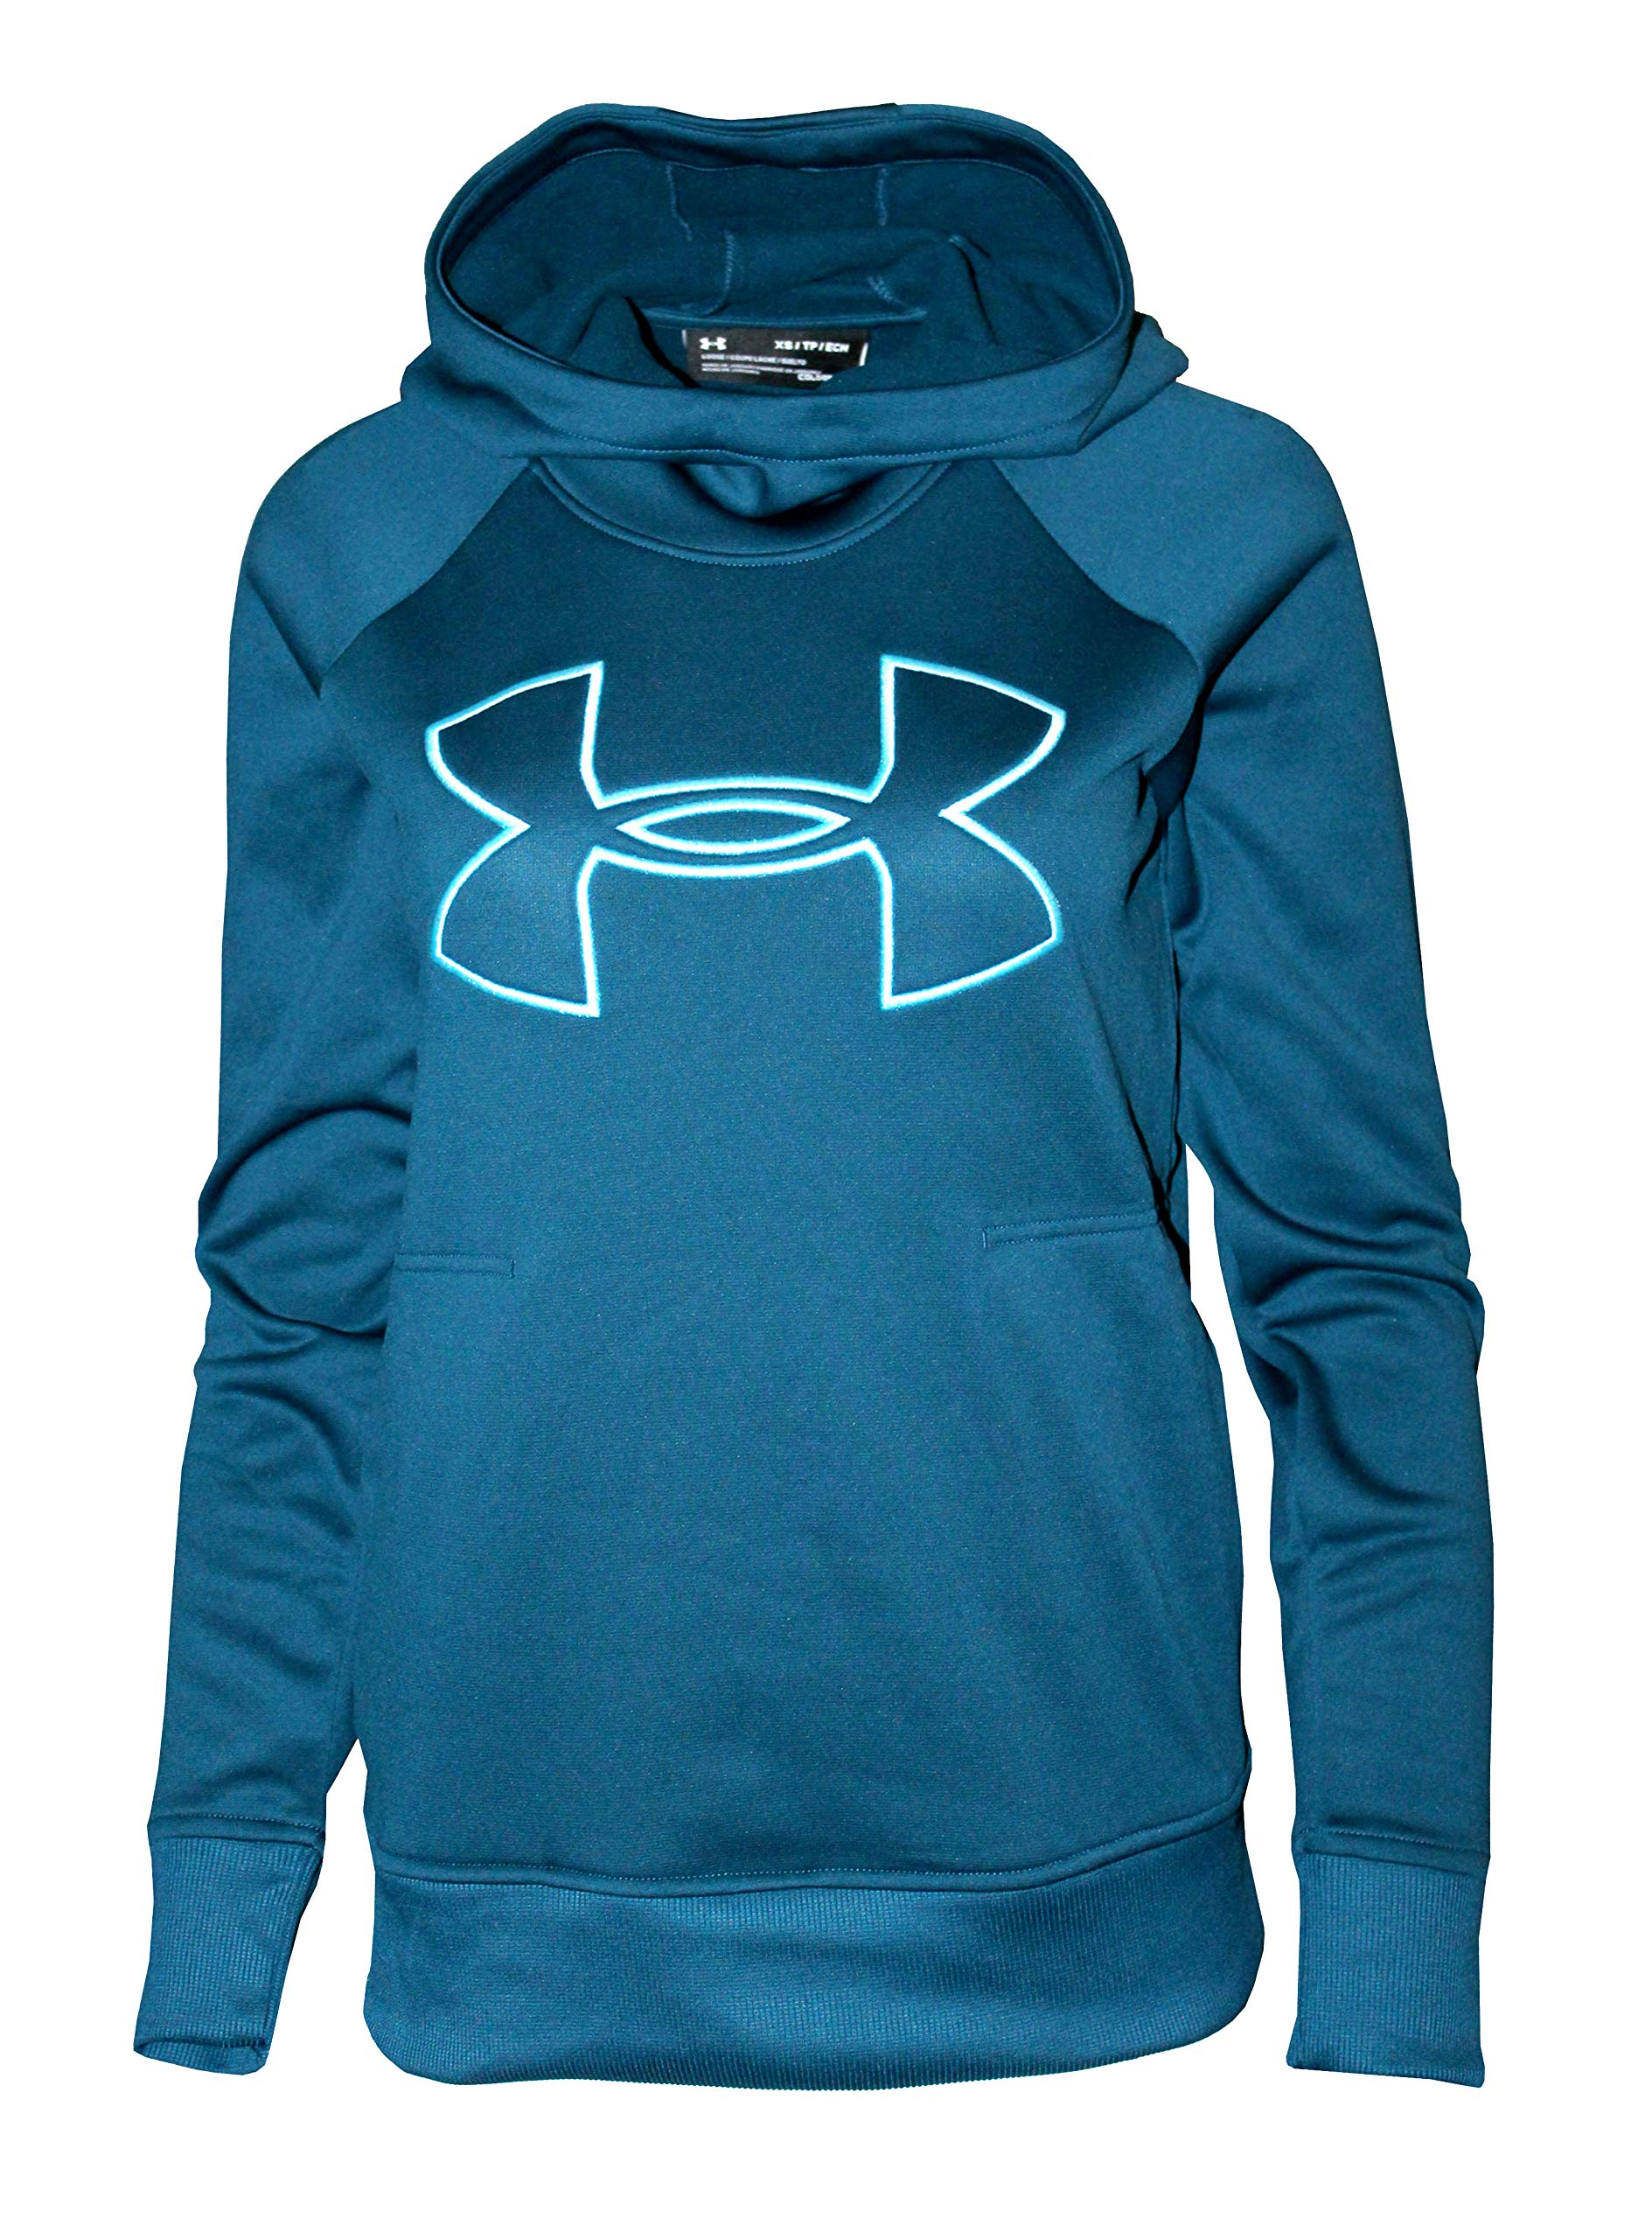 Under Armour Women's Hoodie Active Big Logo Pullover 1318396 (Techno Teal, XL) by Under Armour